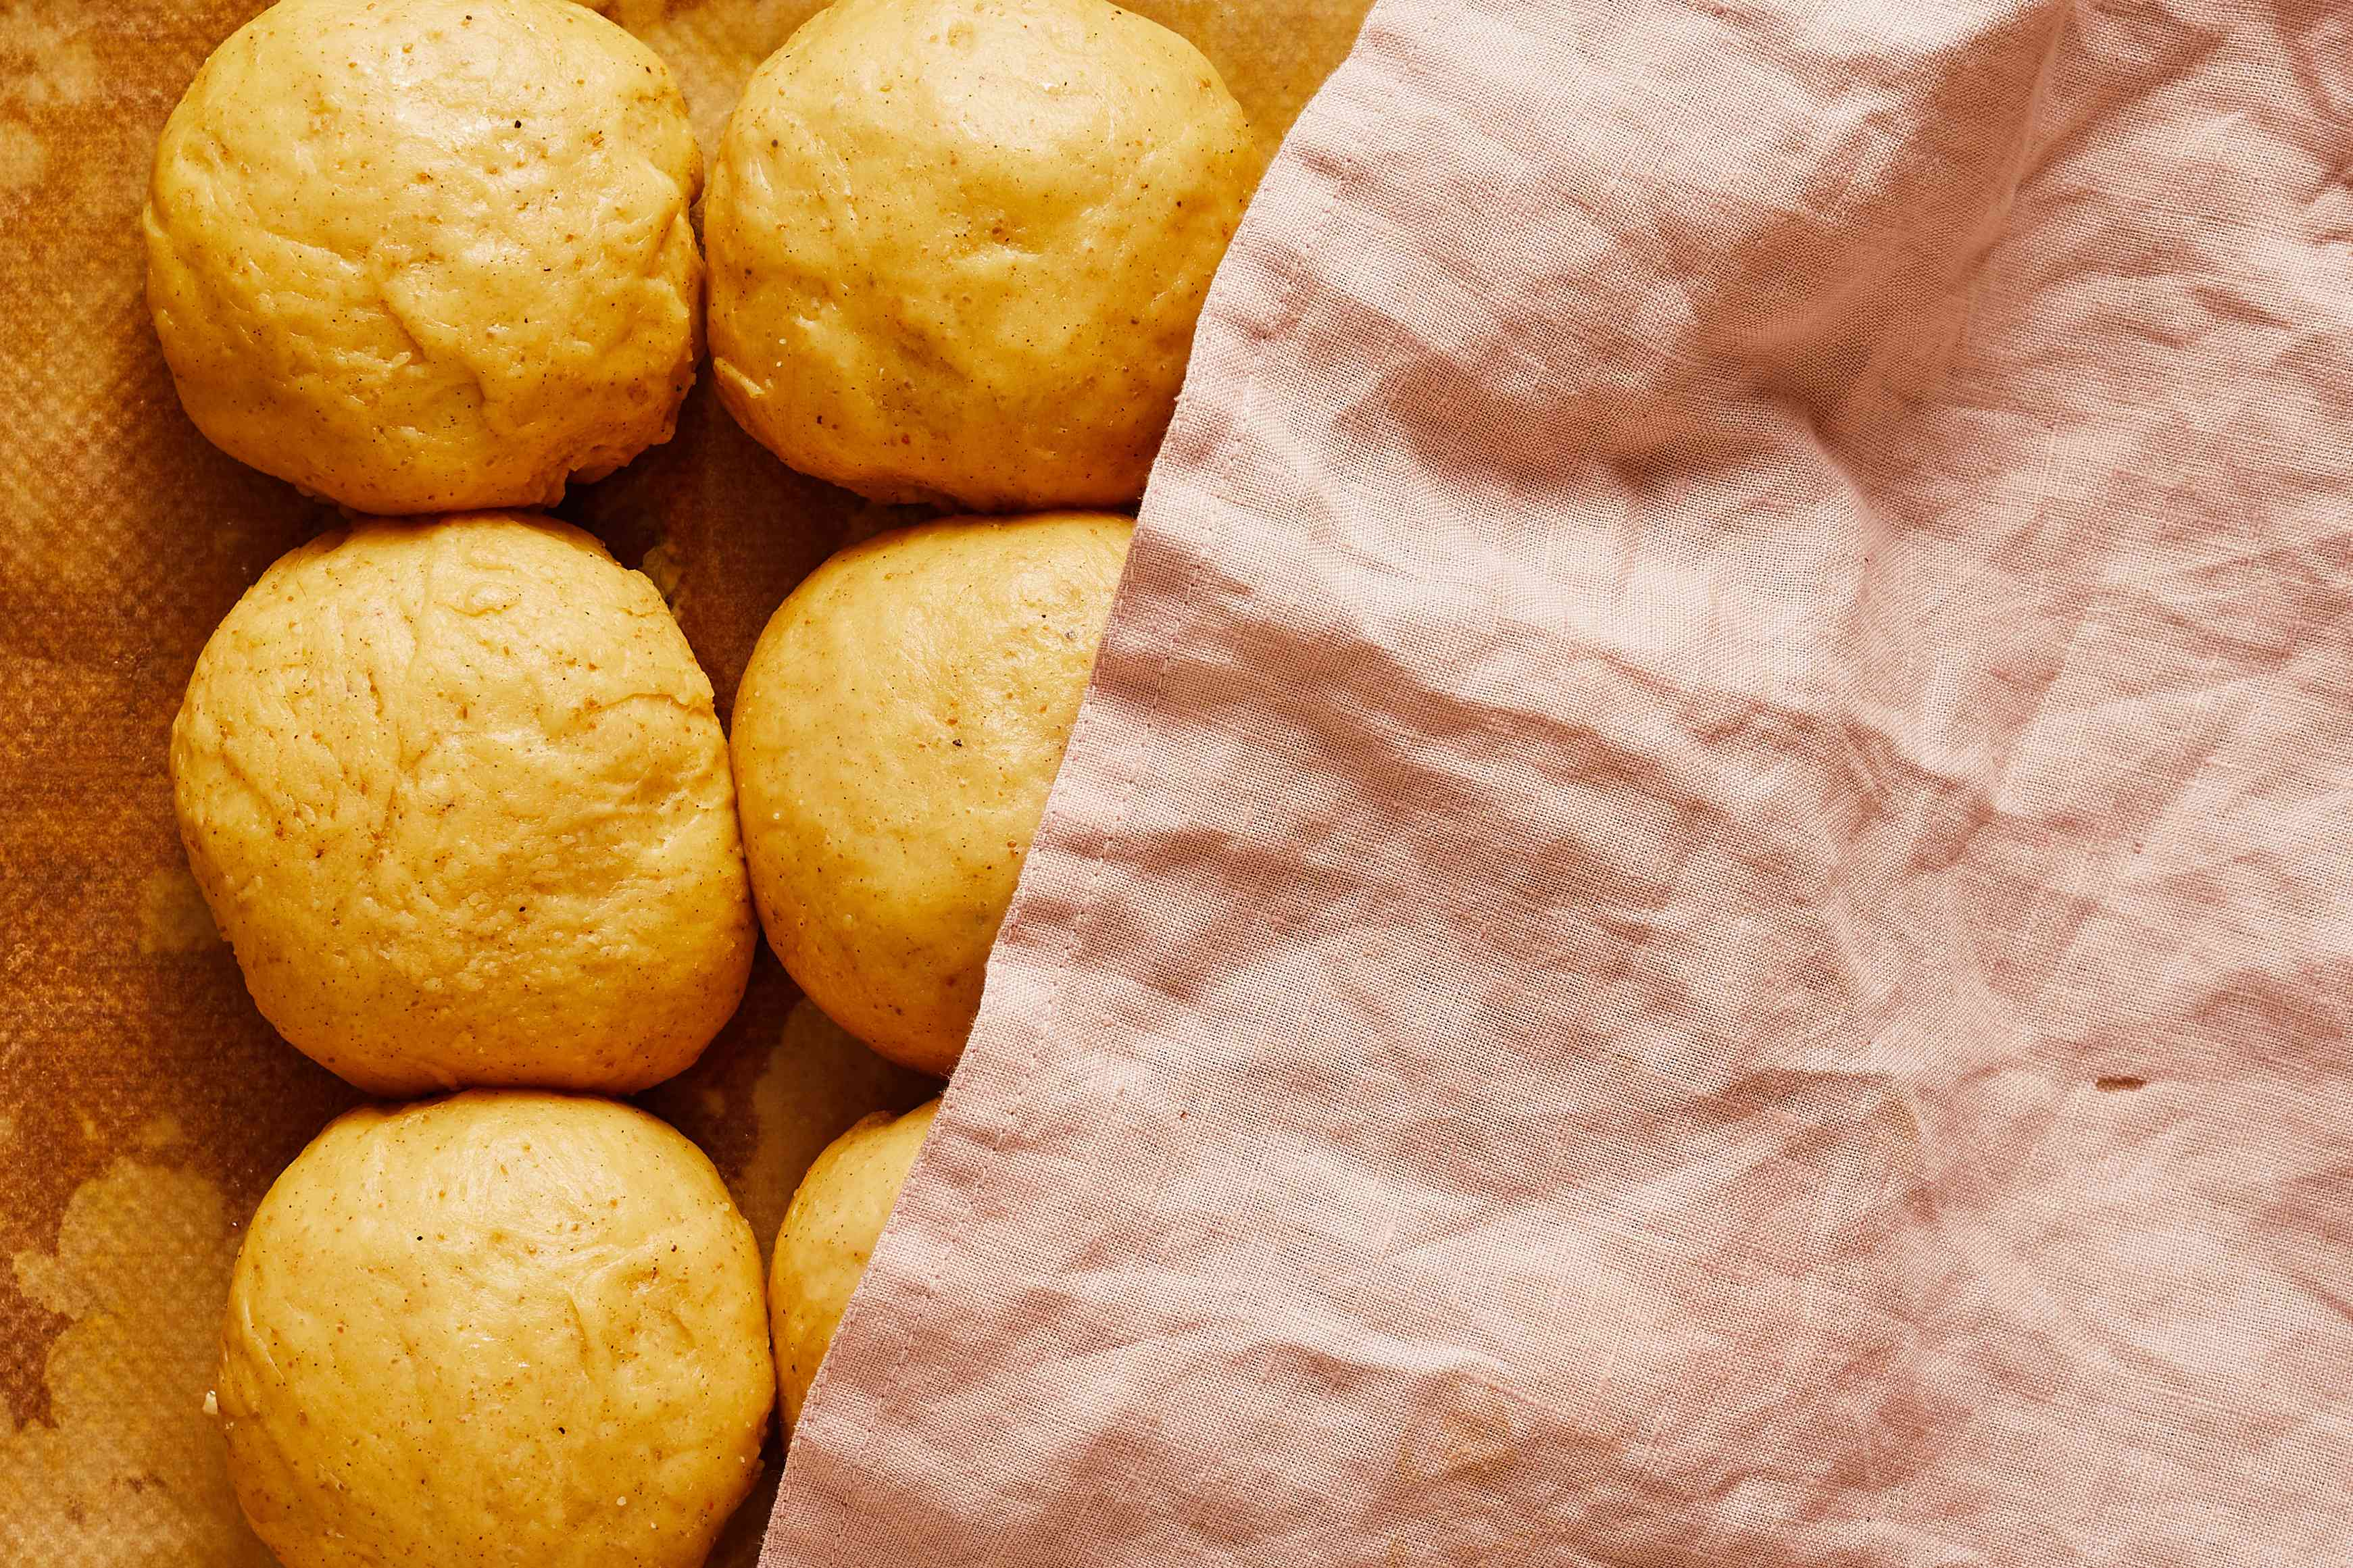 dough balls risen, with kitchen towel covering them partly